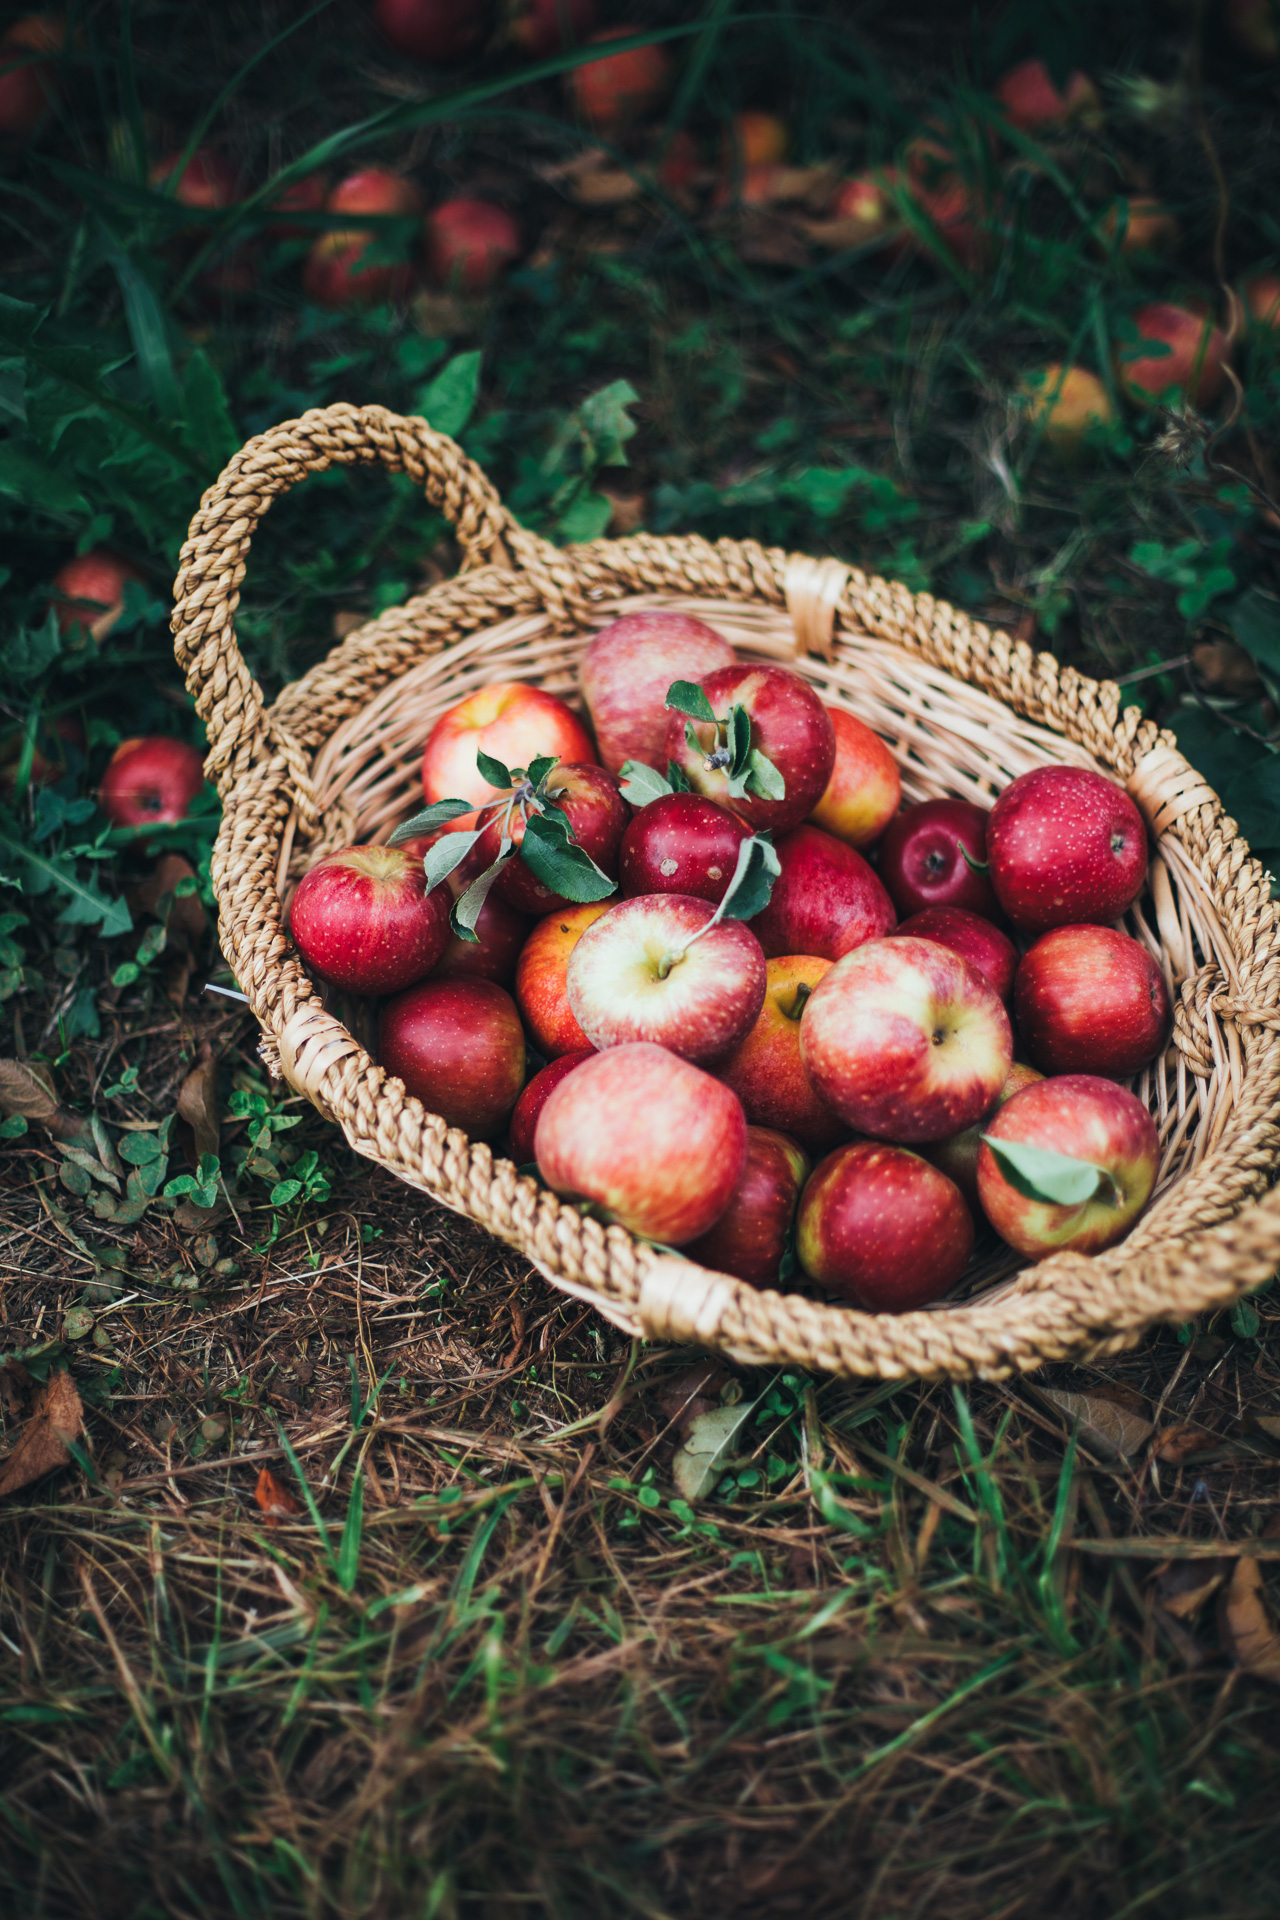 apple picking in charlottesville, va | willfrolicforfood.com